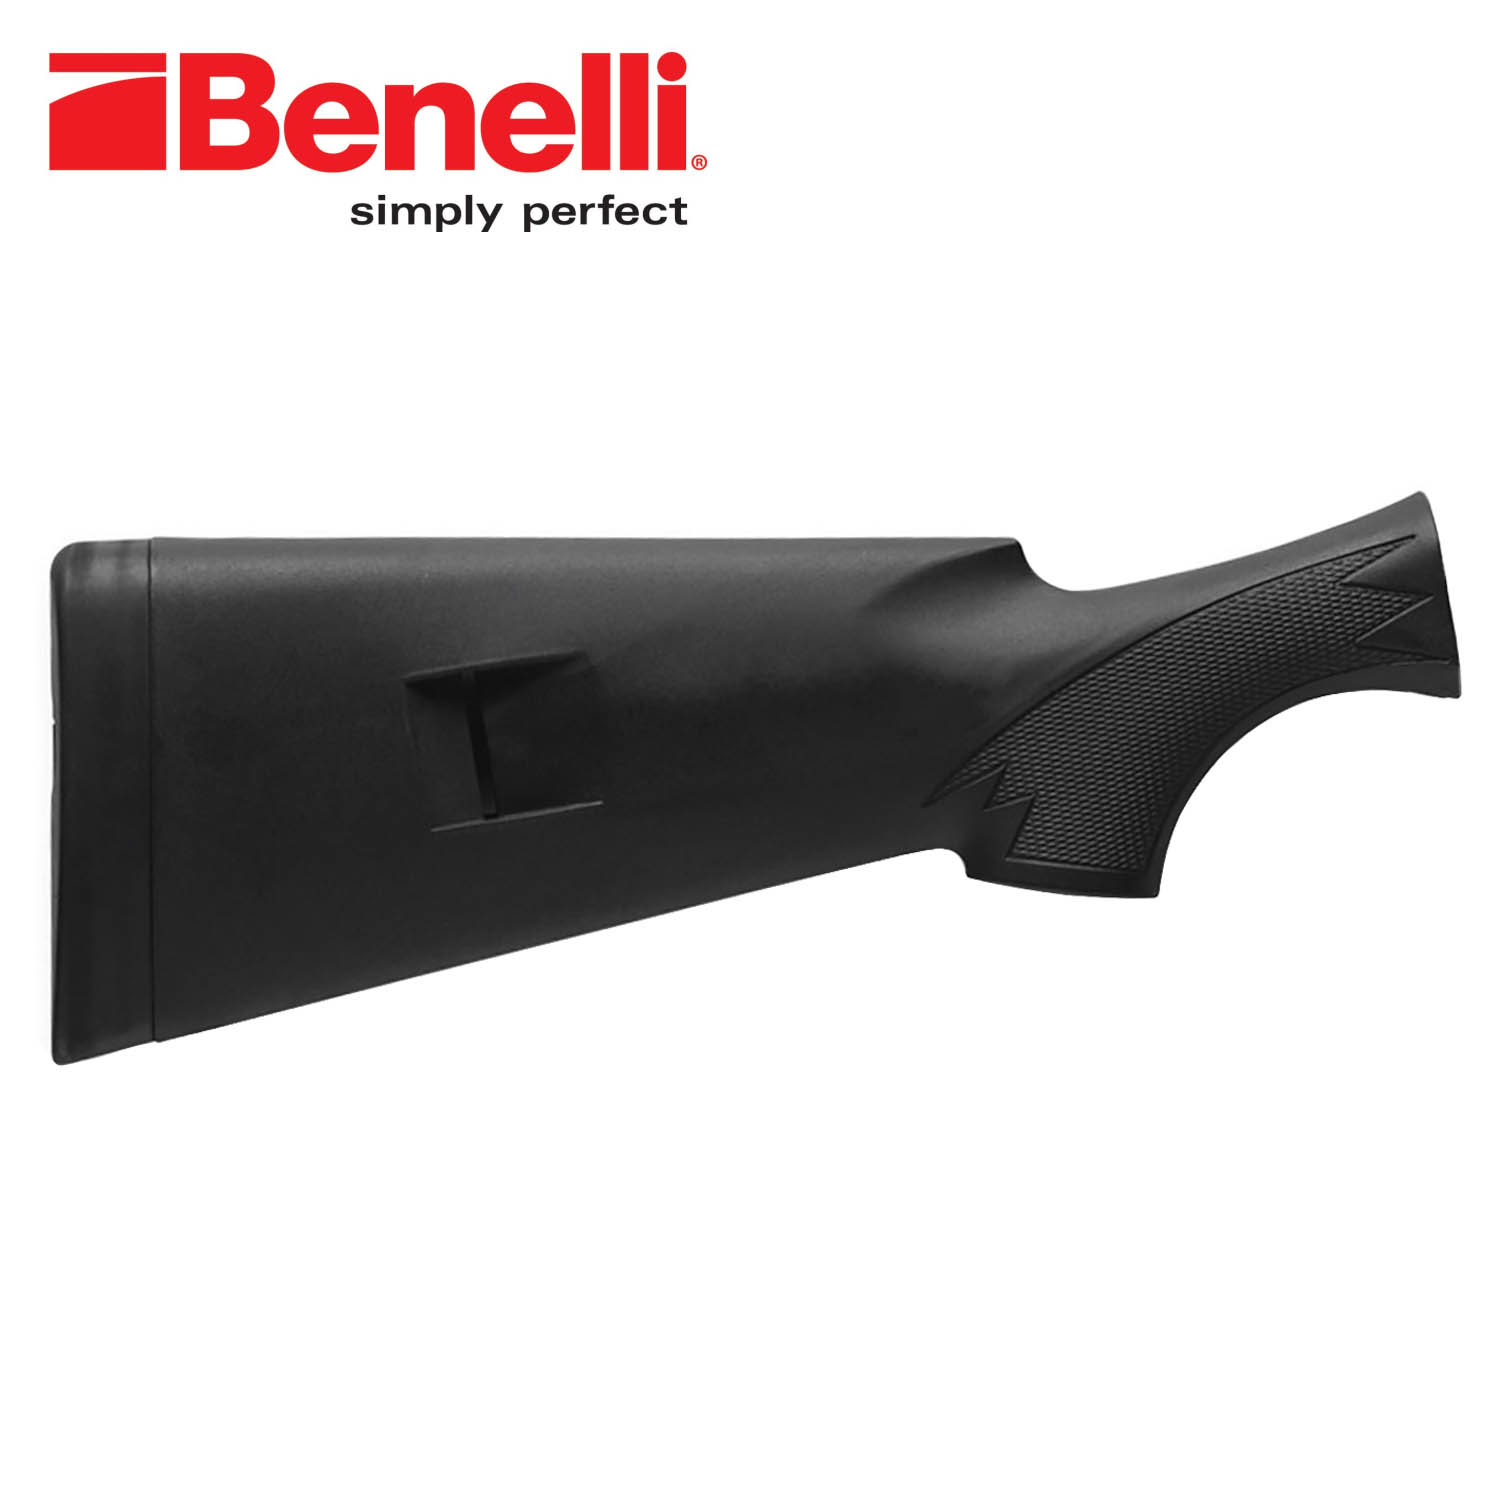 Benelli M4 Standard Synthetic Stock Mgw